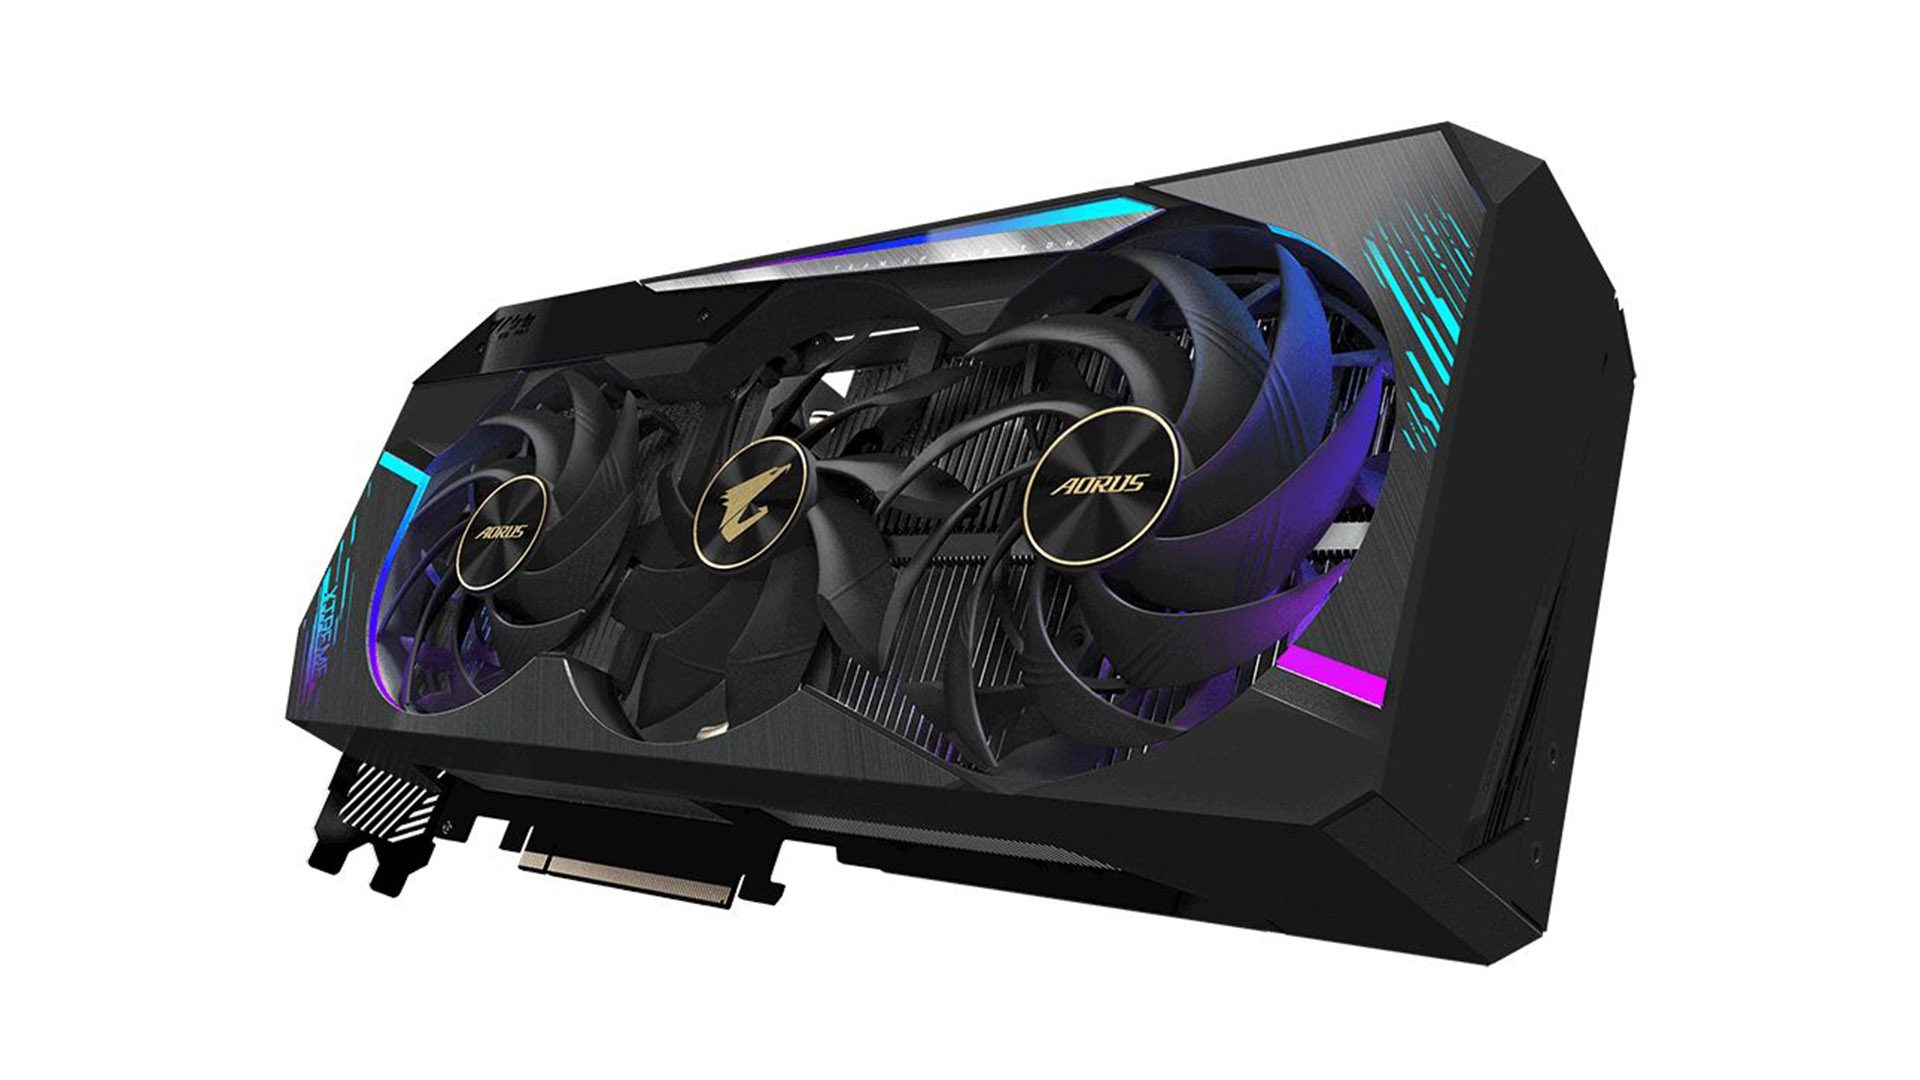 Gigabyte has 12 Nvidia RTX 3080 Ti graphics cards on the way at 12GB